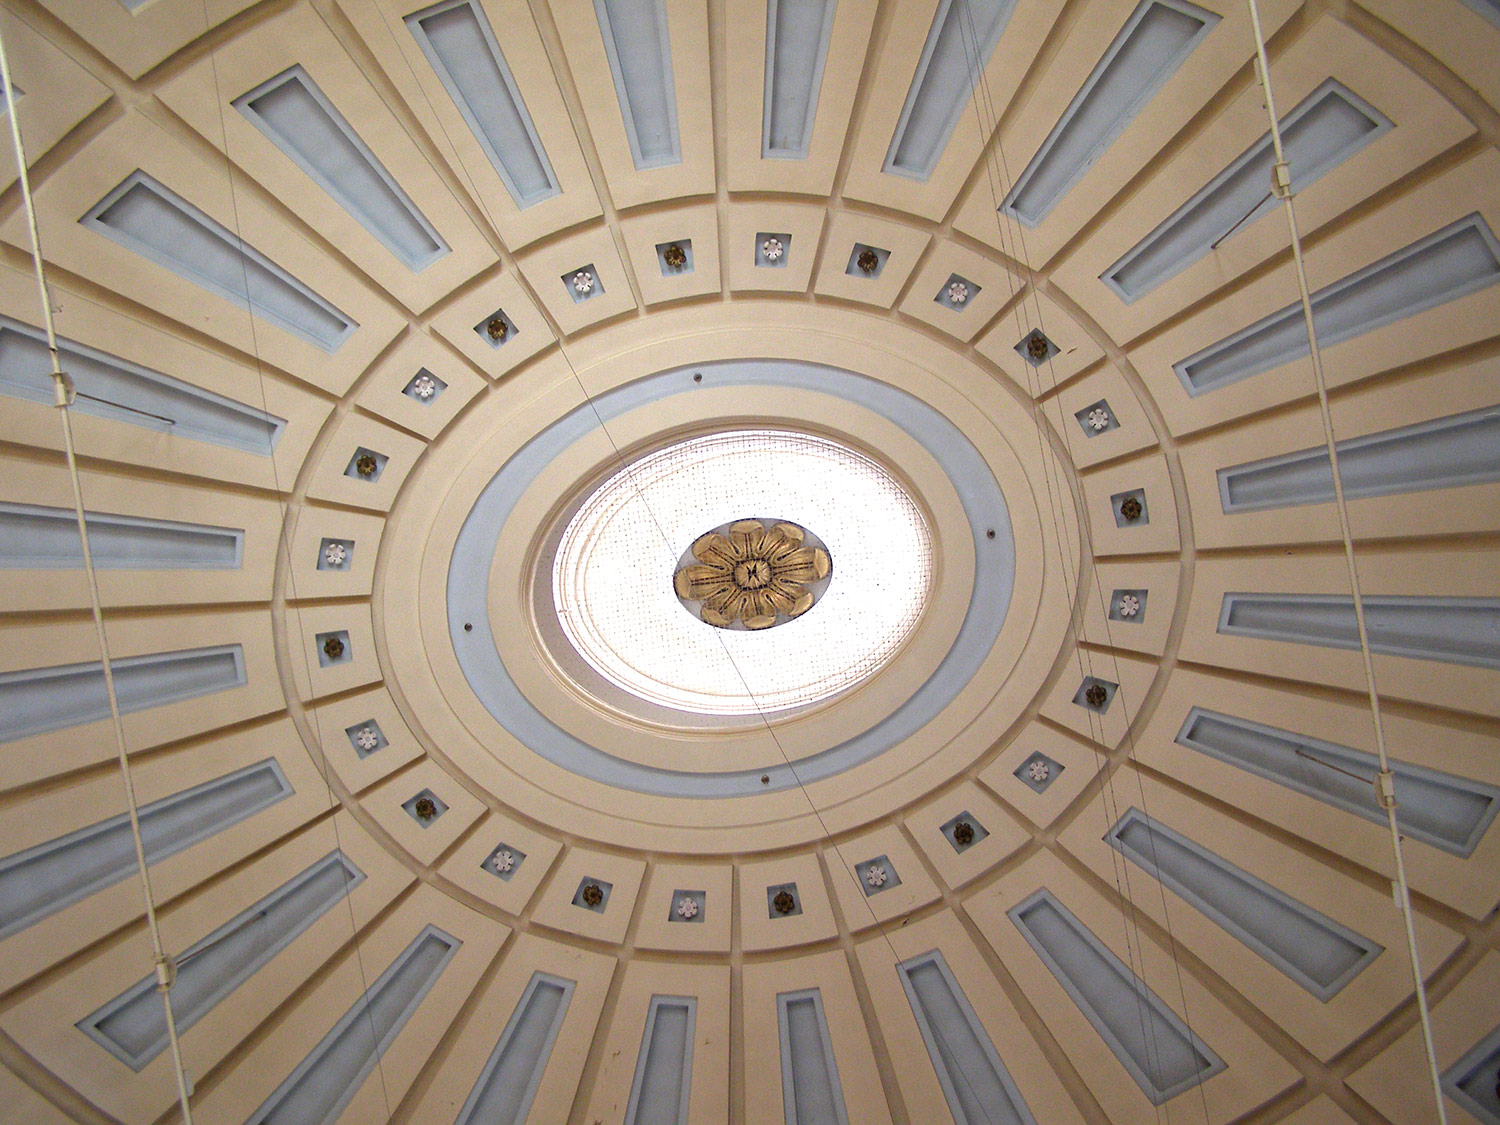 The ceiling at Quincy Market, Fanueil Hall, Boston, Massachusetts